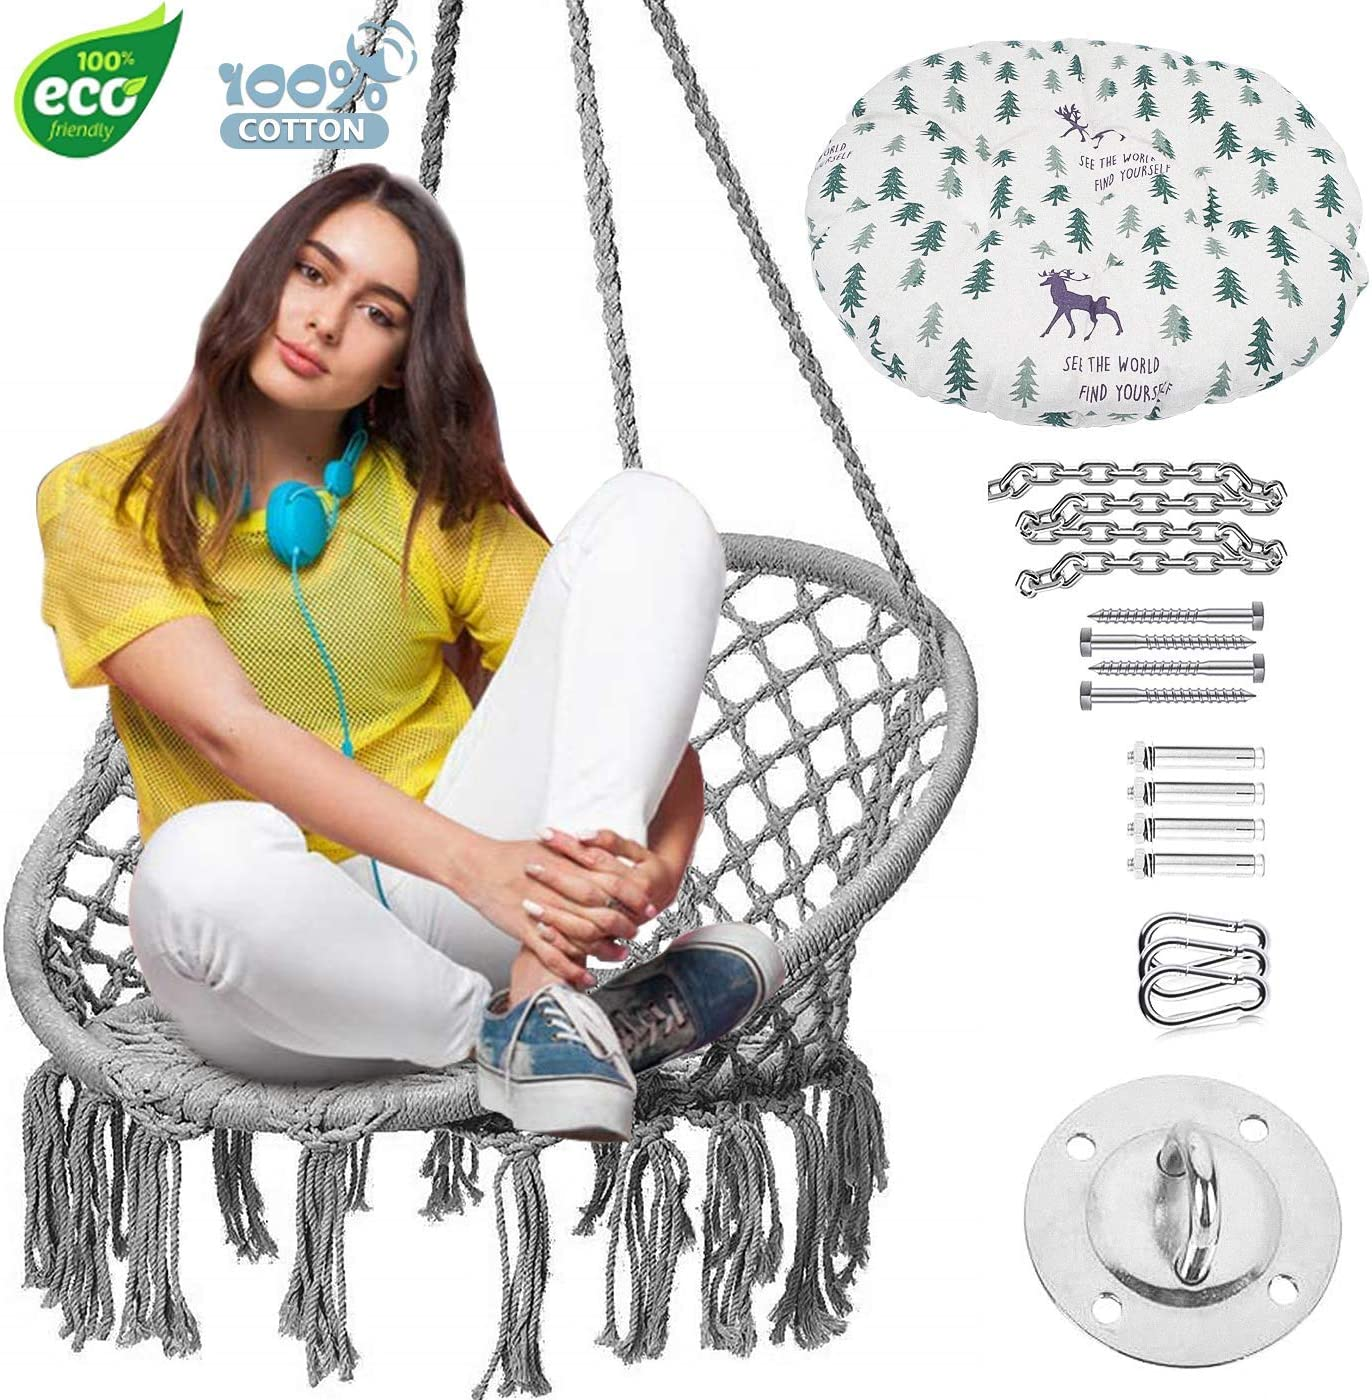 TINTONLIFE Hammock Chair Macrame Swing with Cushion Durable Hanging Hardware Kit Max 330 Lbs-Indoor Macrame Swing Chairs 100 Cotton Rope for Bedroom Outdoor Gift for Birthday Christmas Grey